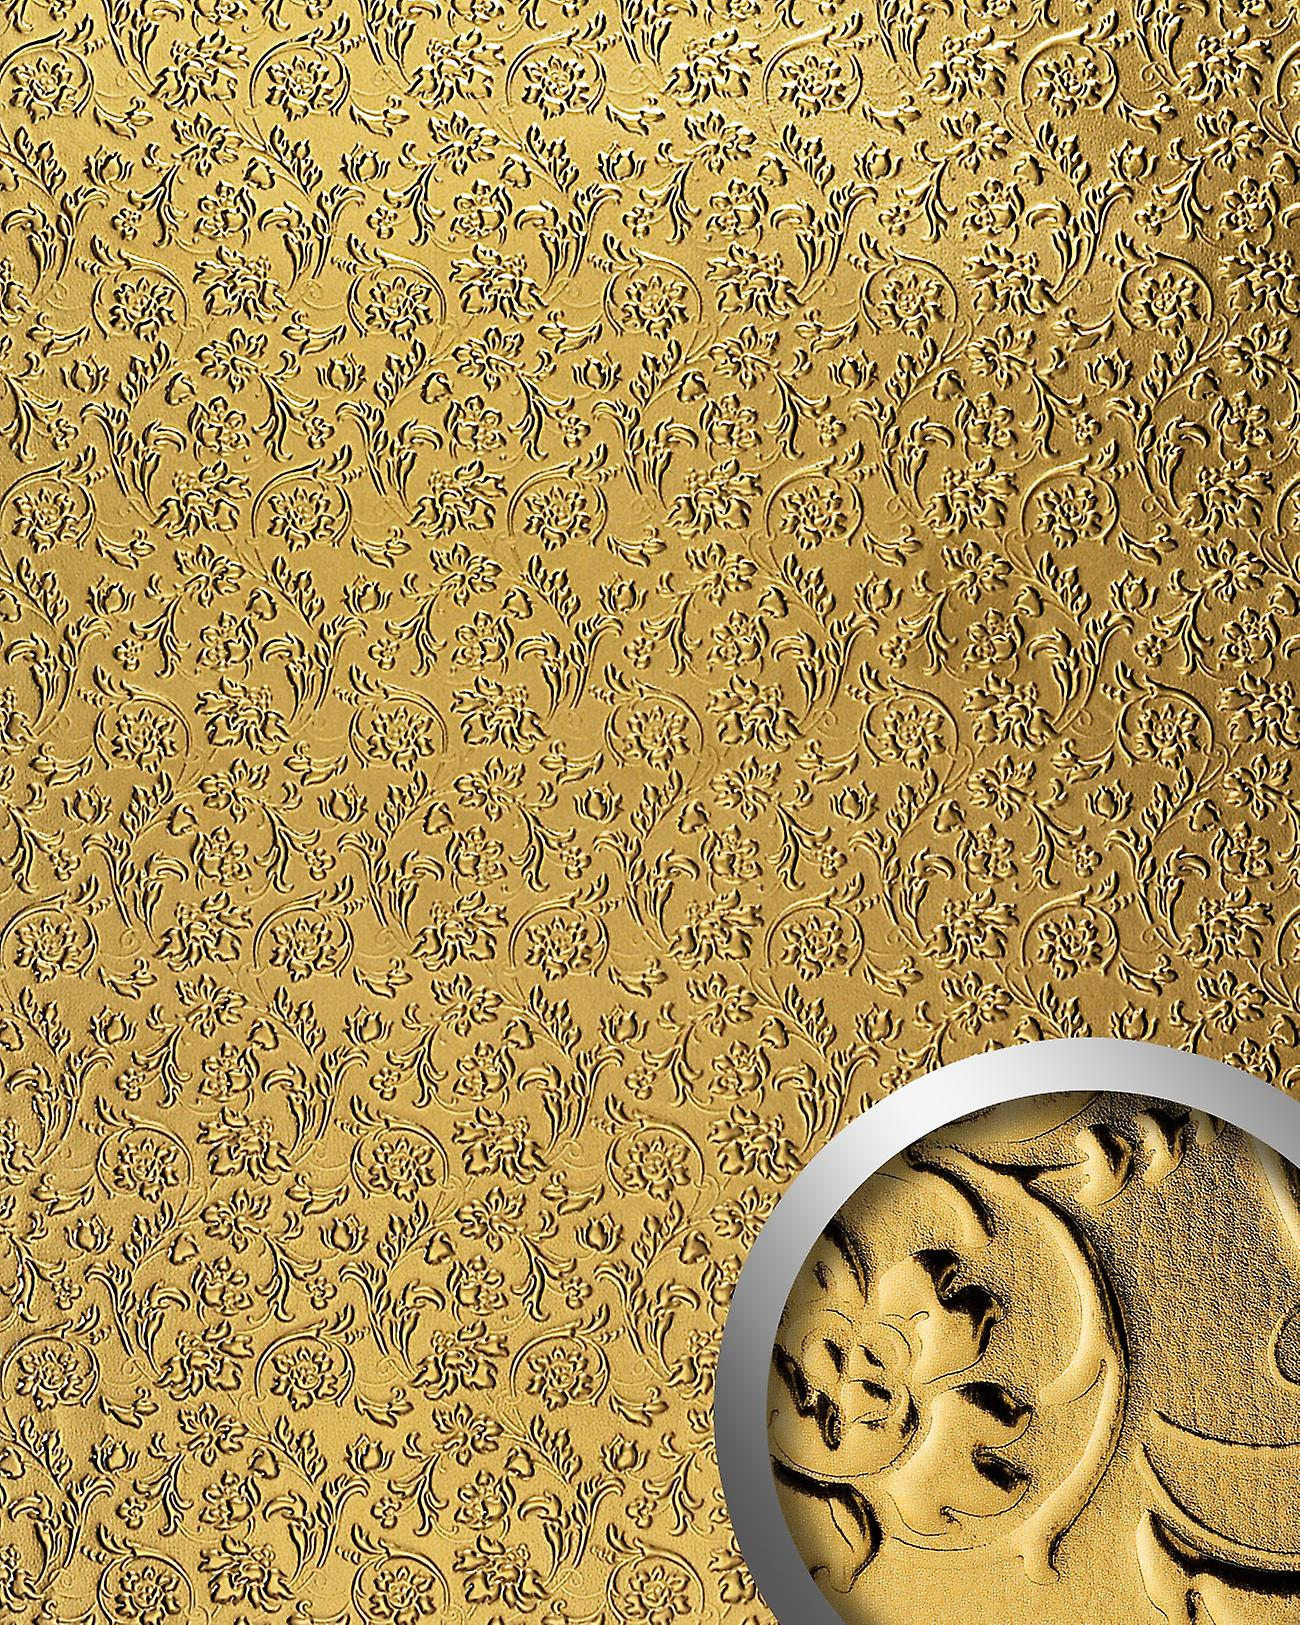 Wall Panel luxury 3D WallFace 14267 FLORAL decor Baroque flowers self adhesive wallpaper covering wall covering gold | 2.60 sq m